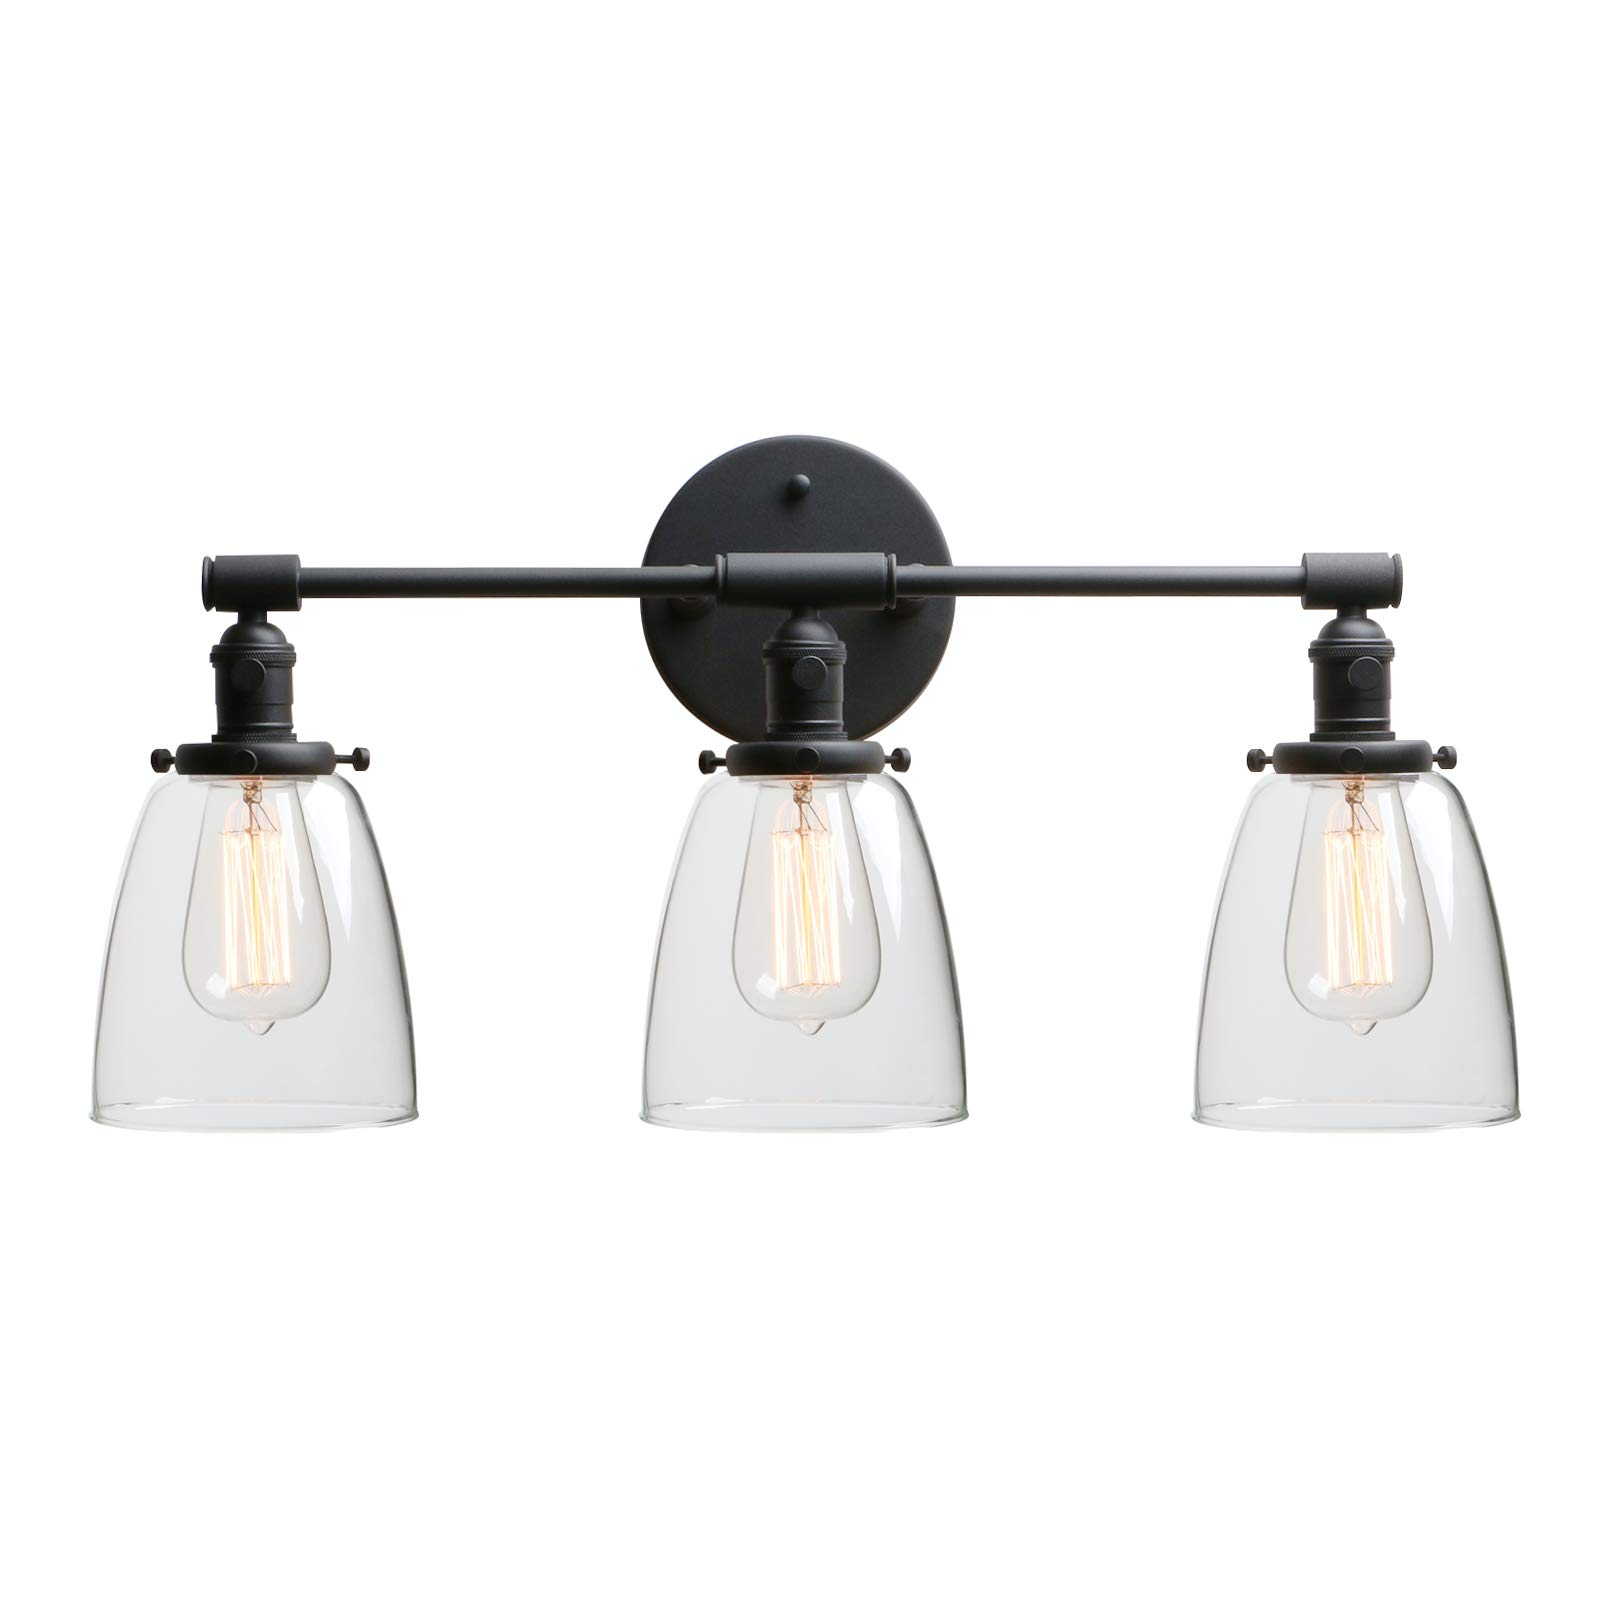 """Phansthy 3 Light Industrial Wall Sconce Black Sconces with 5.6"""" Dome Shape Clear Glass Shade, Black"""